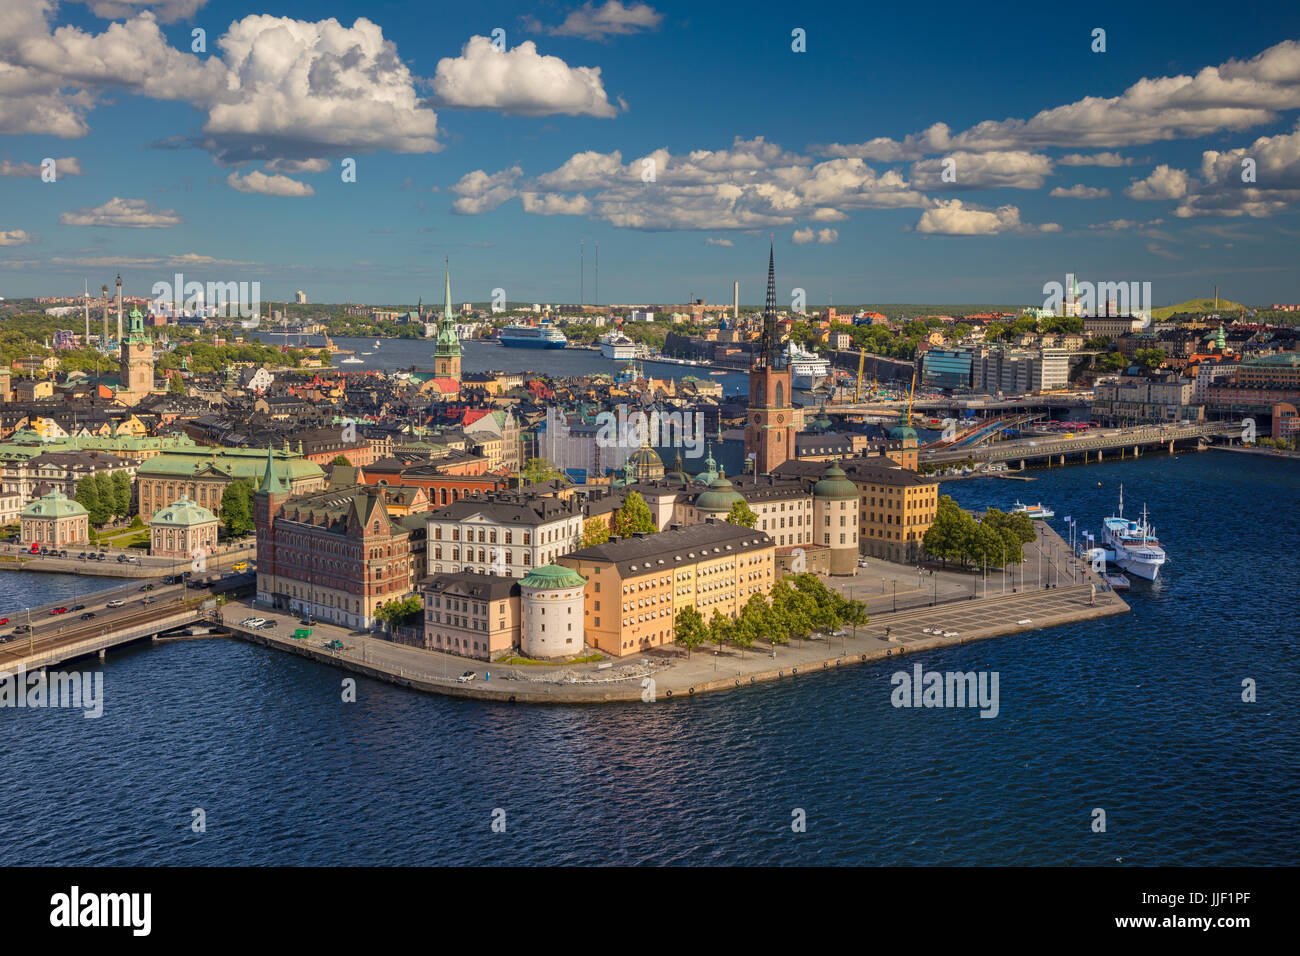 Stockholm. Aerial image of old town Stockholm, Sweden during during sunny day. - Stock Image